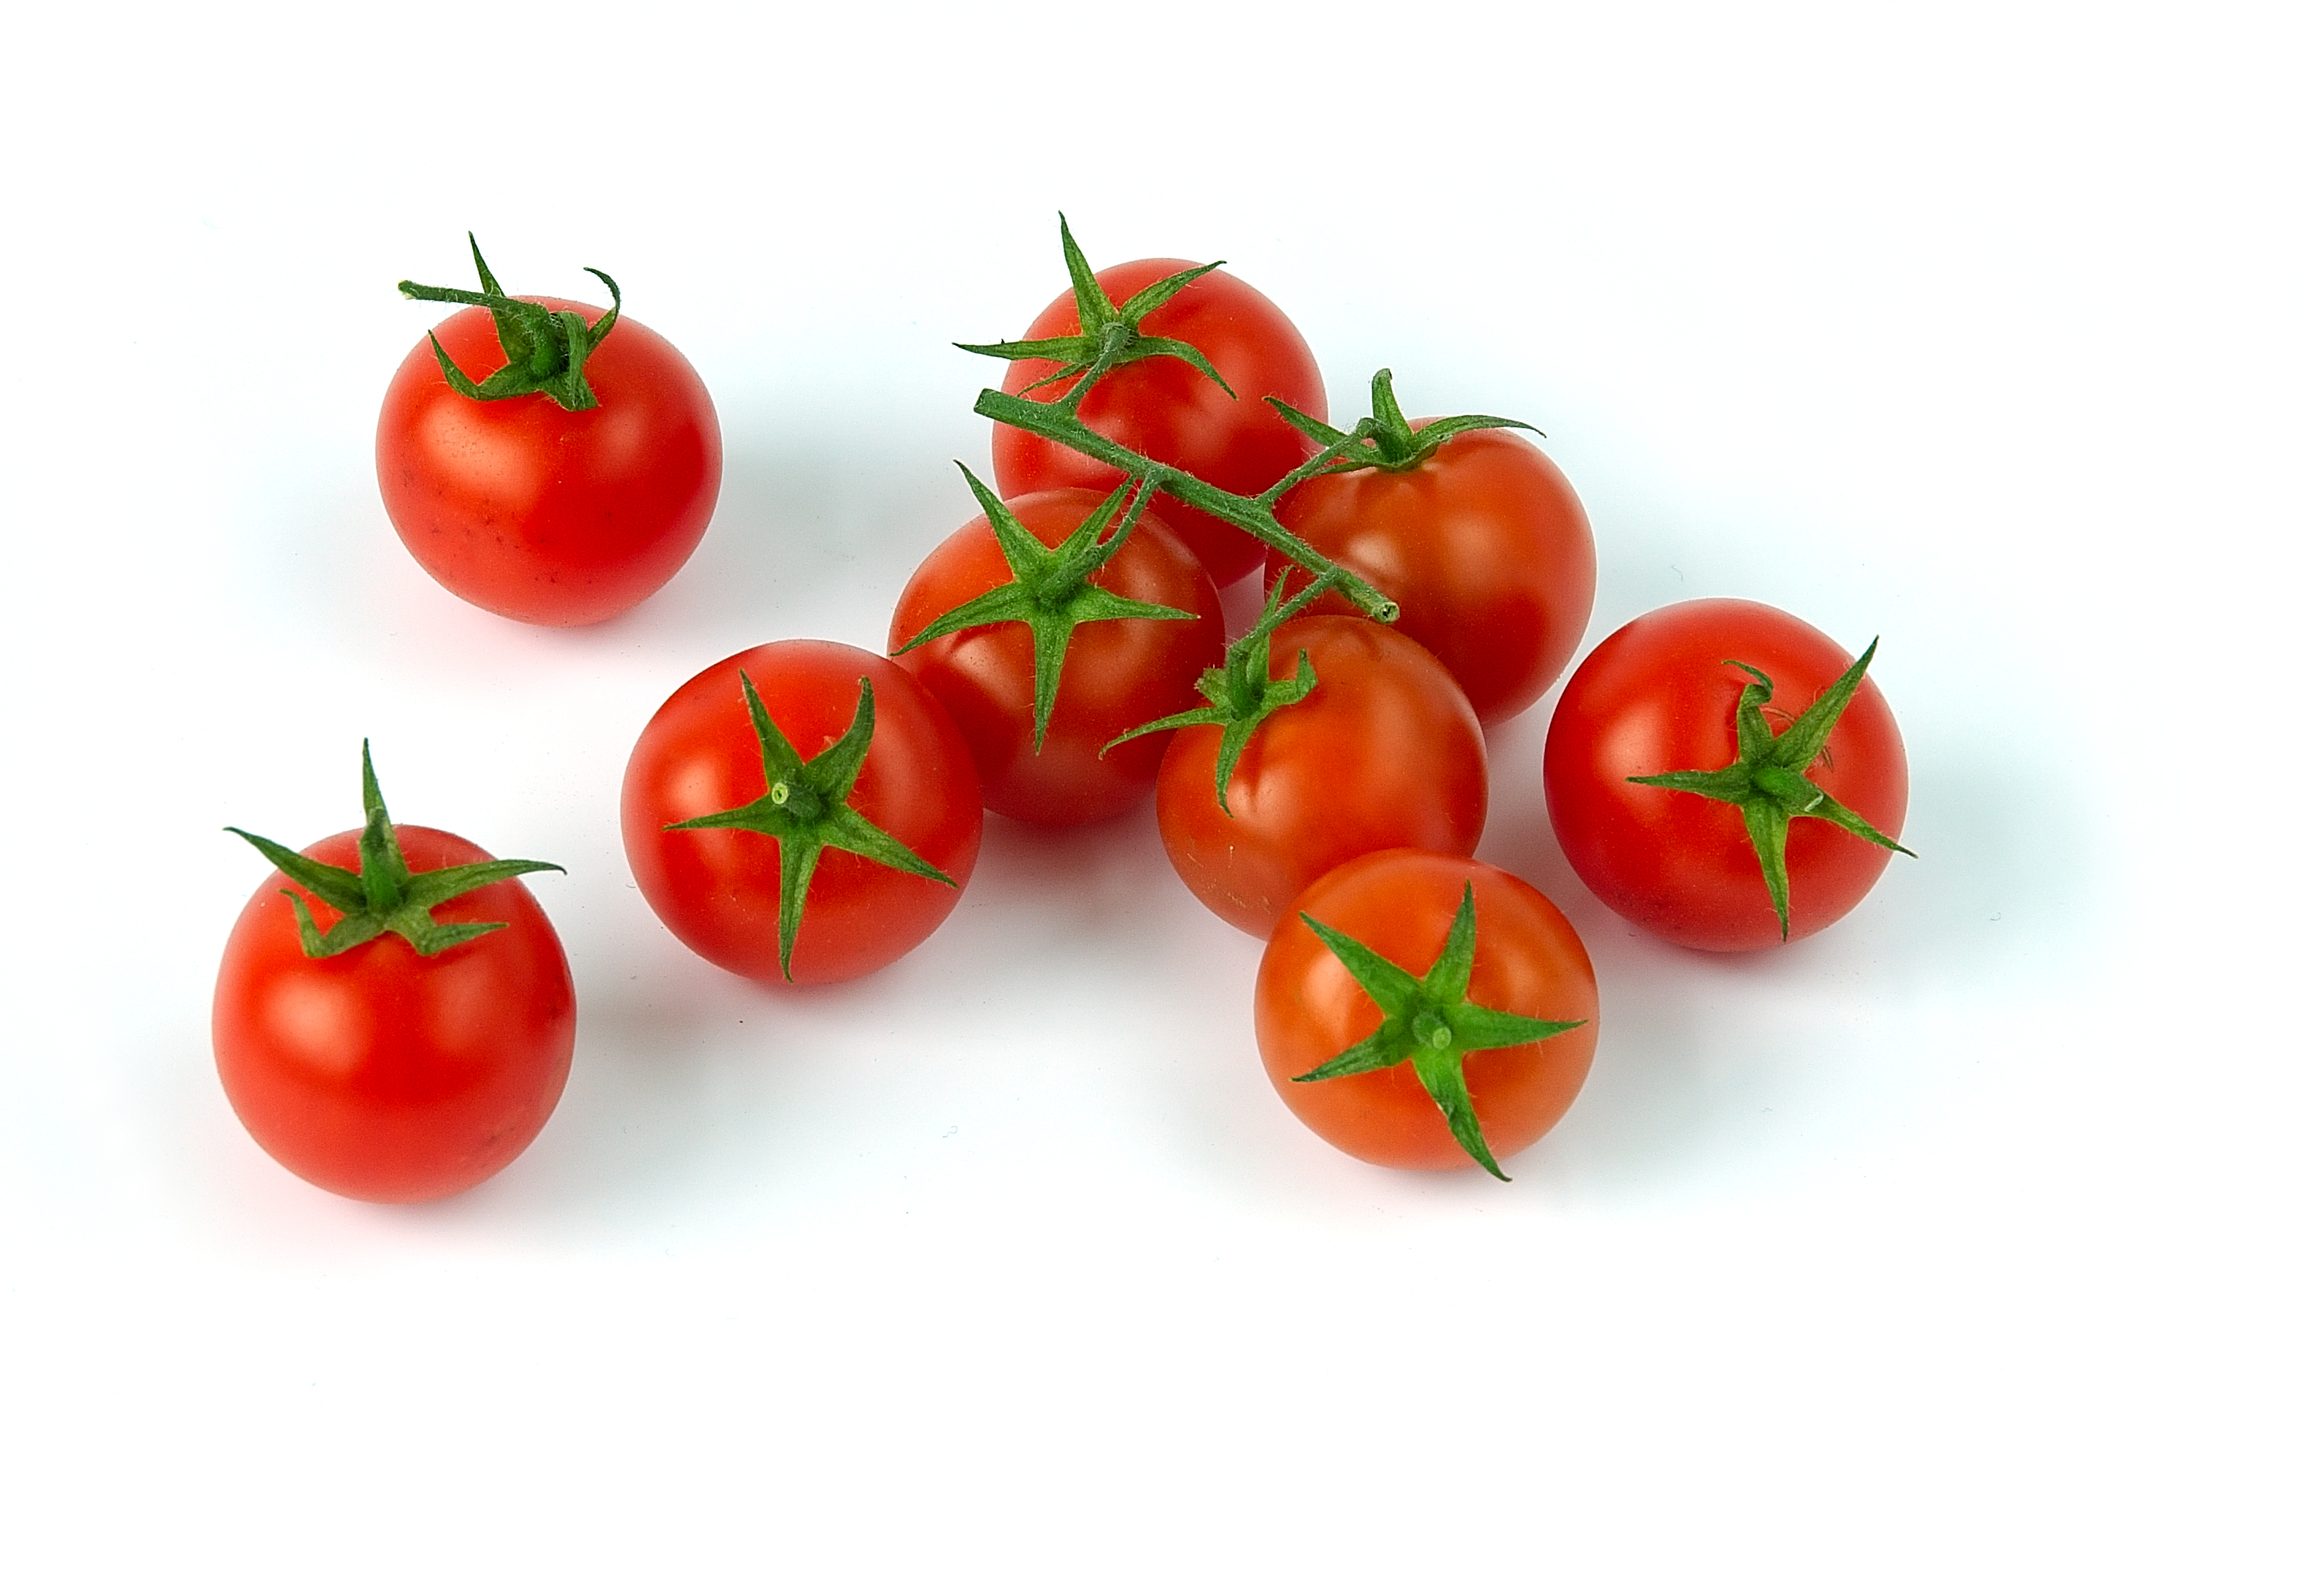 Can Of Tomatoes Swelling Food Contamination